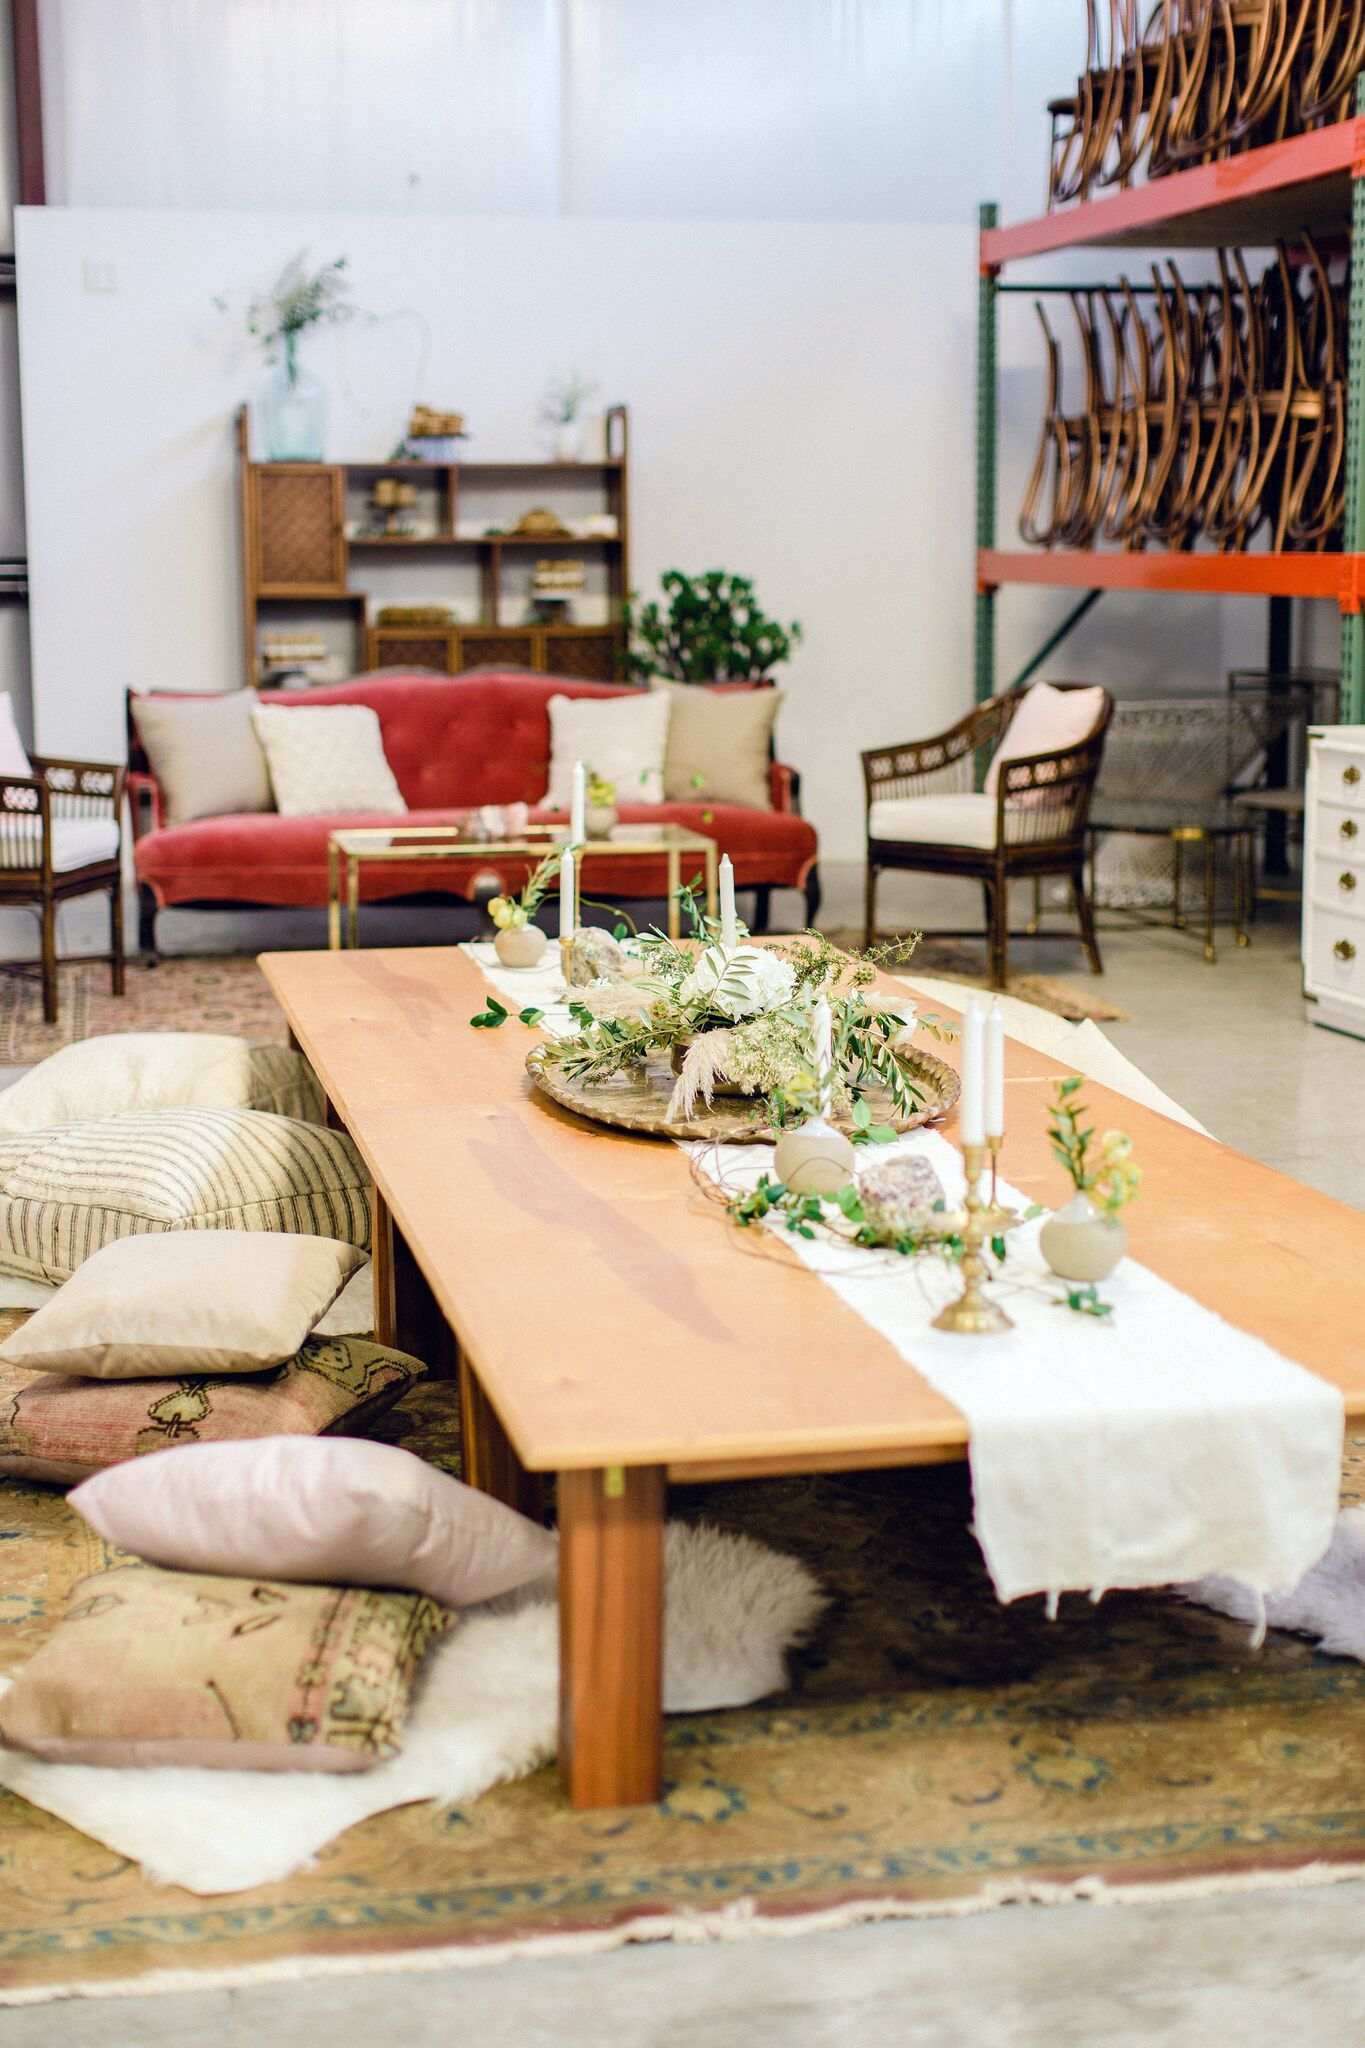 Bohemian Floor Seating With Modern Low Tables And Pink Pillows On A Gray Blue Rug Via Birch Br Vintage Als For Weddings Special Events In